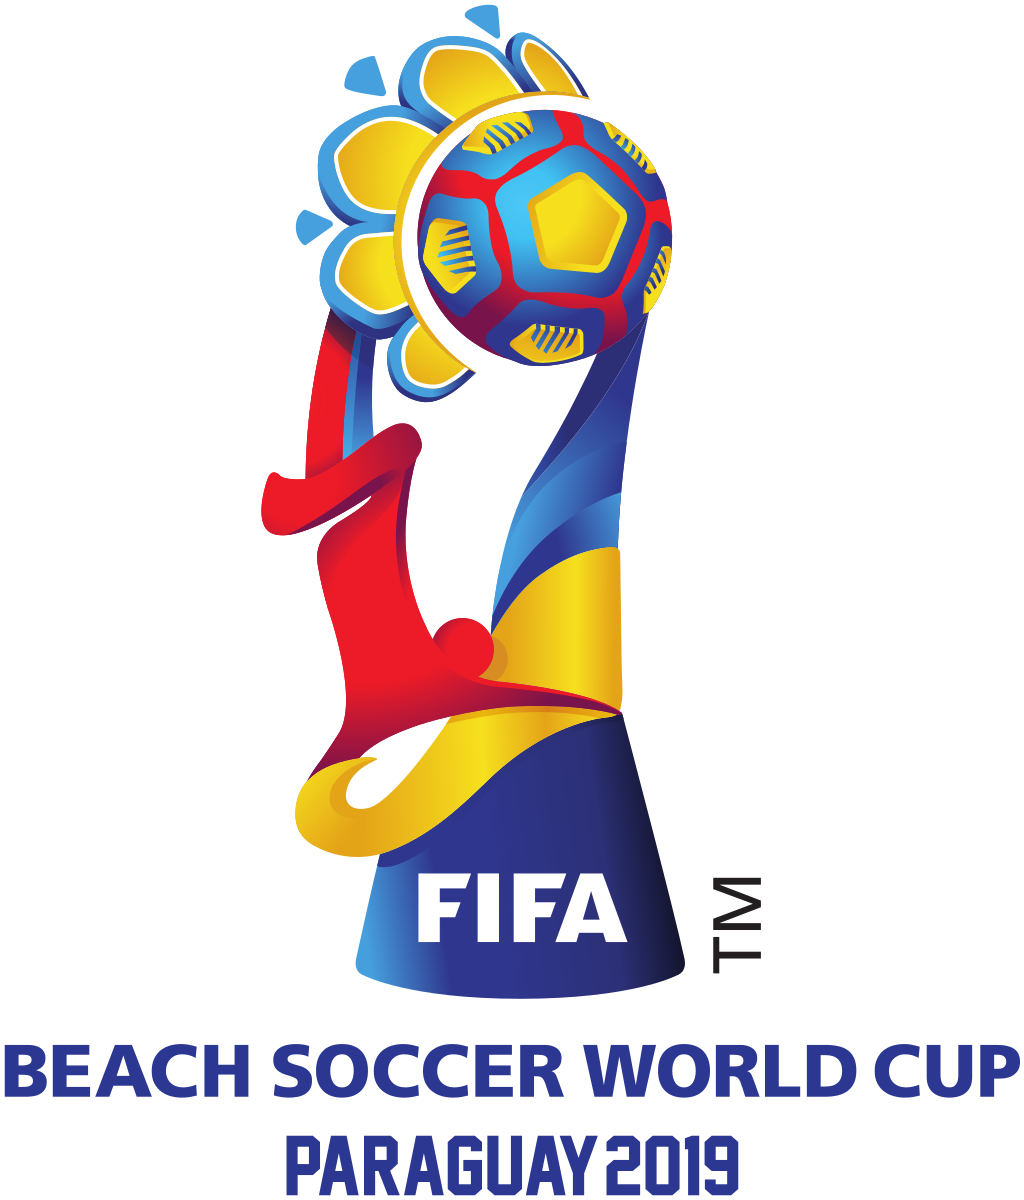 2019 FIFA Beach Soccer World Cup